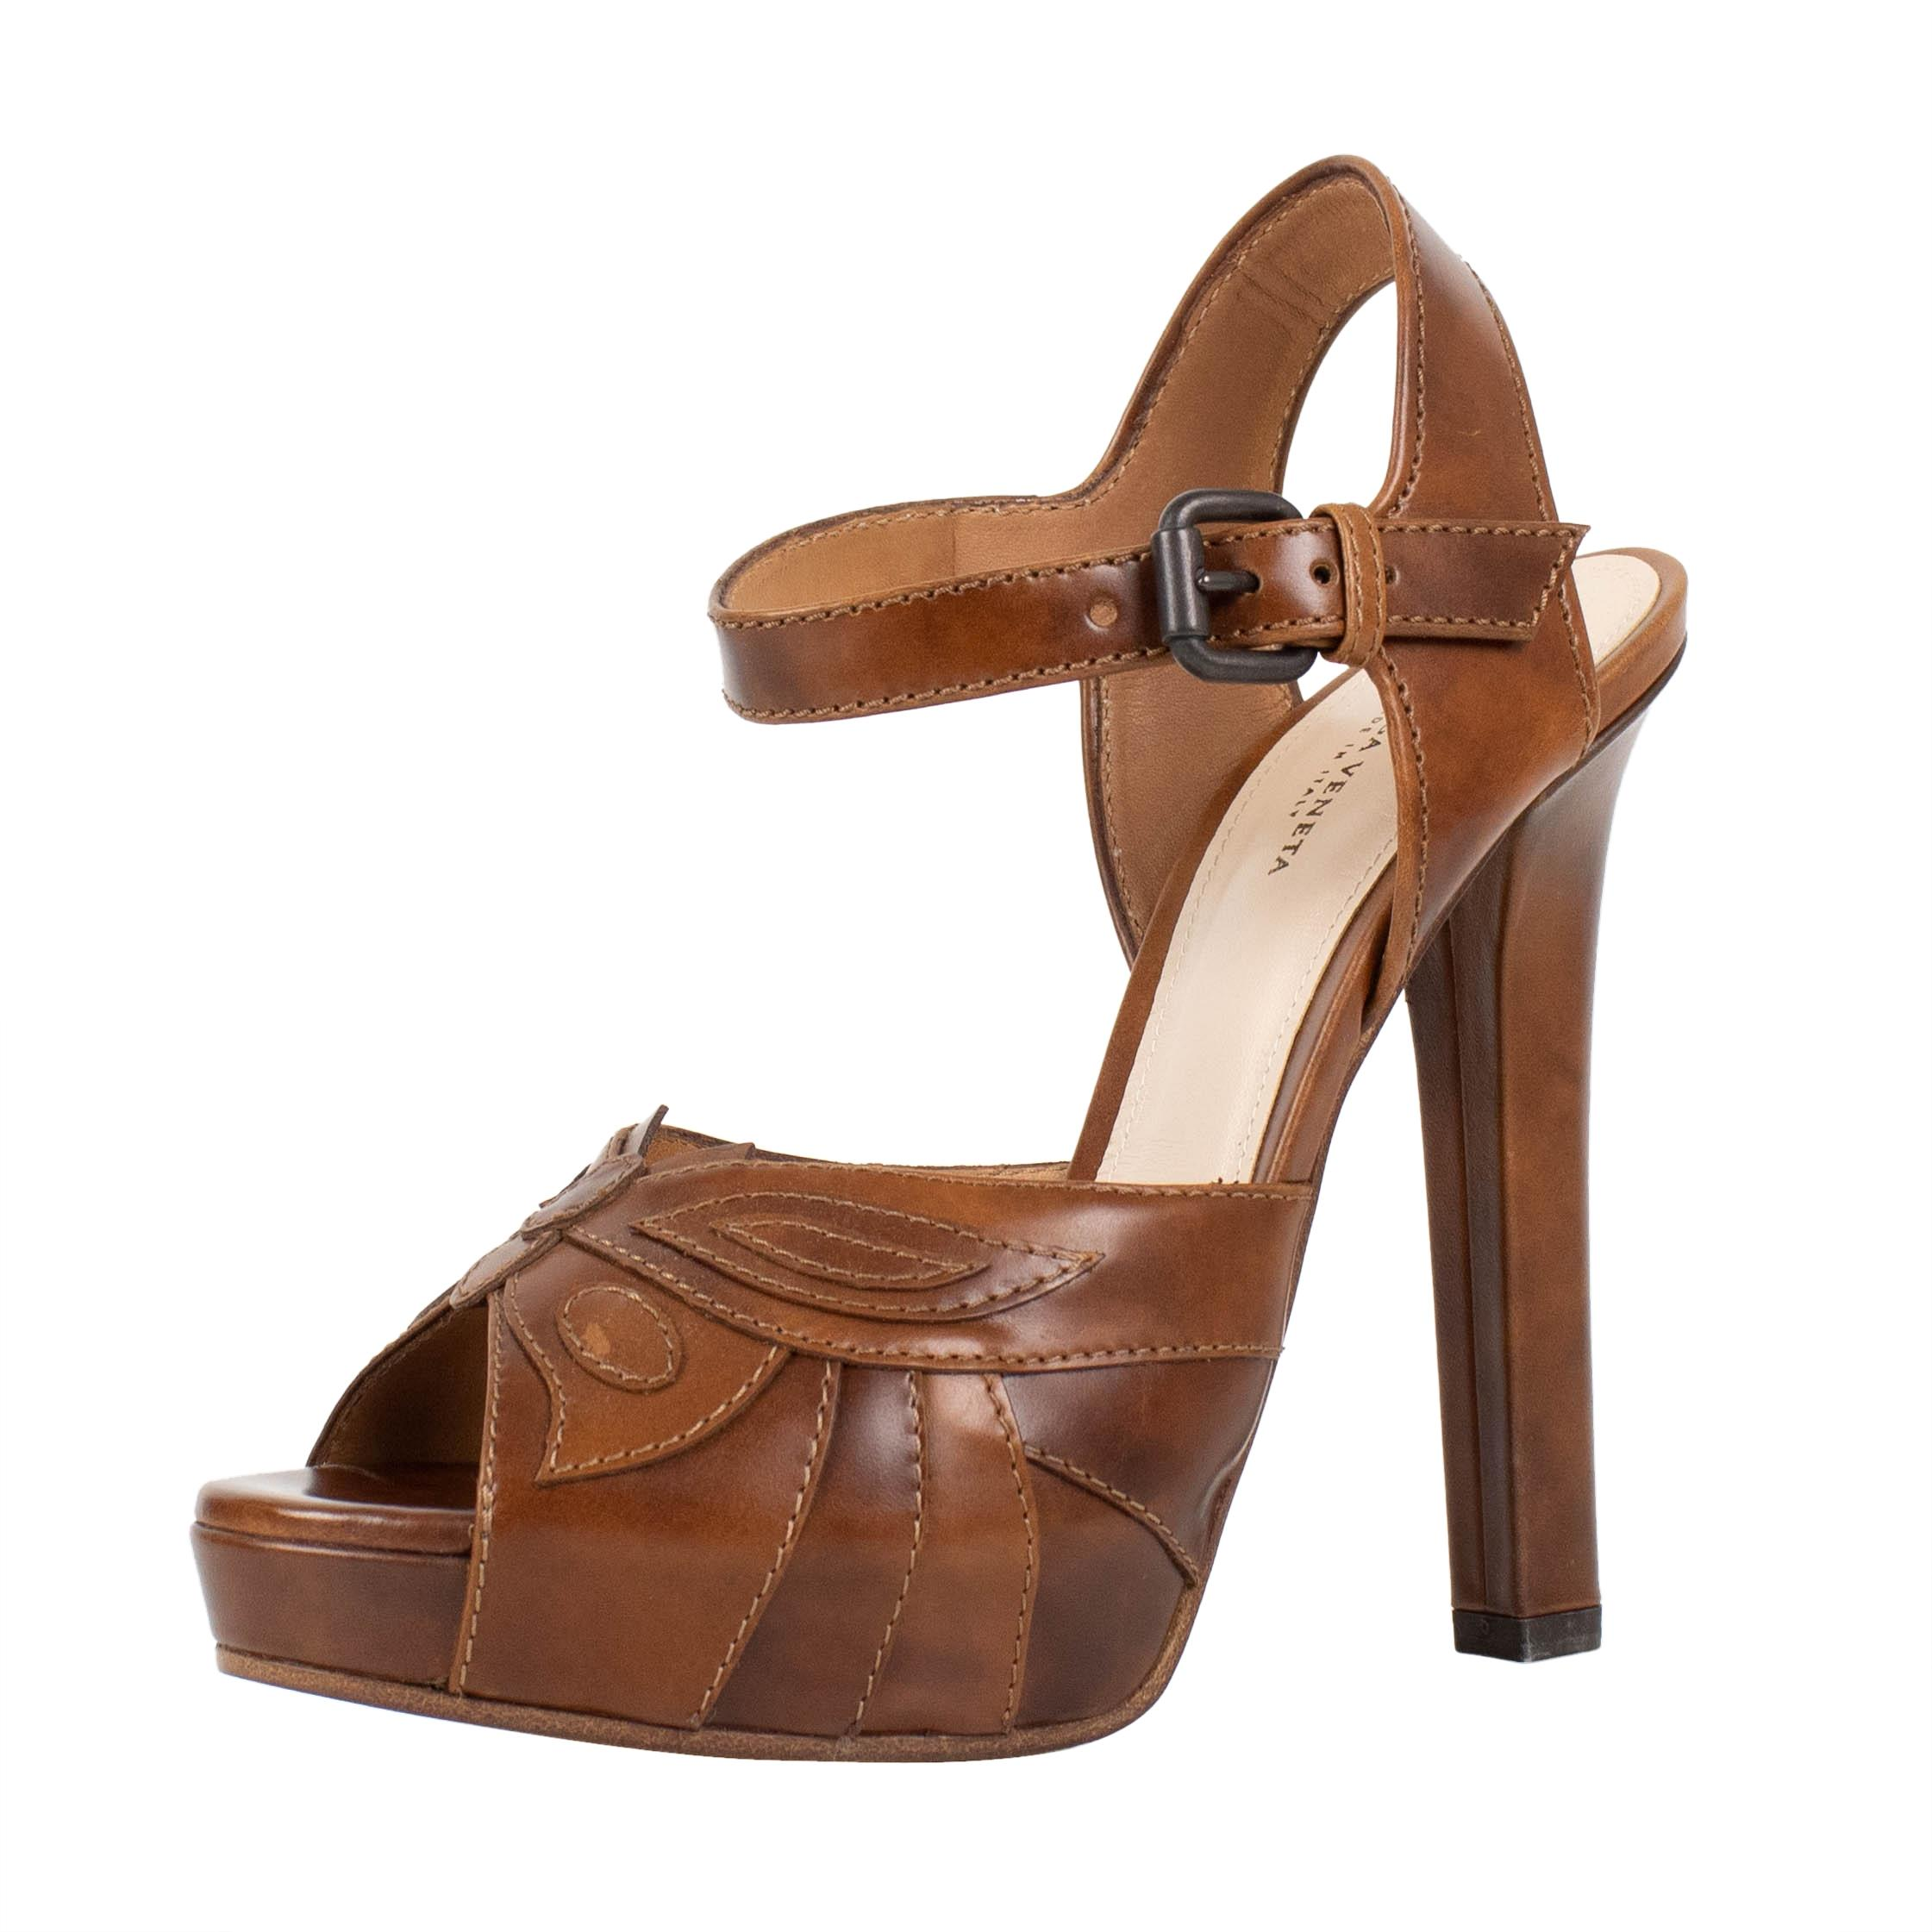 Bottega Veneta Brown Leather Open Toe Heels Pumps Size US 6.5 Regular (M, B)